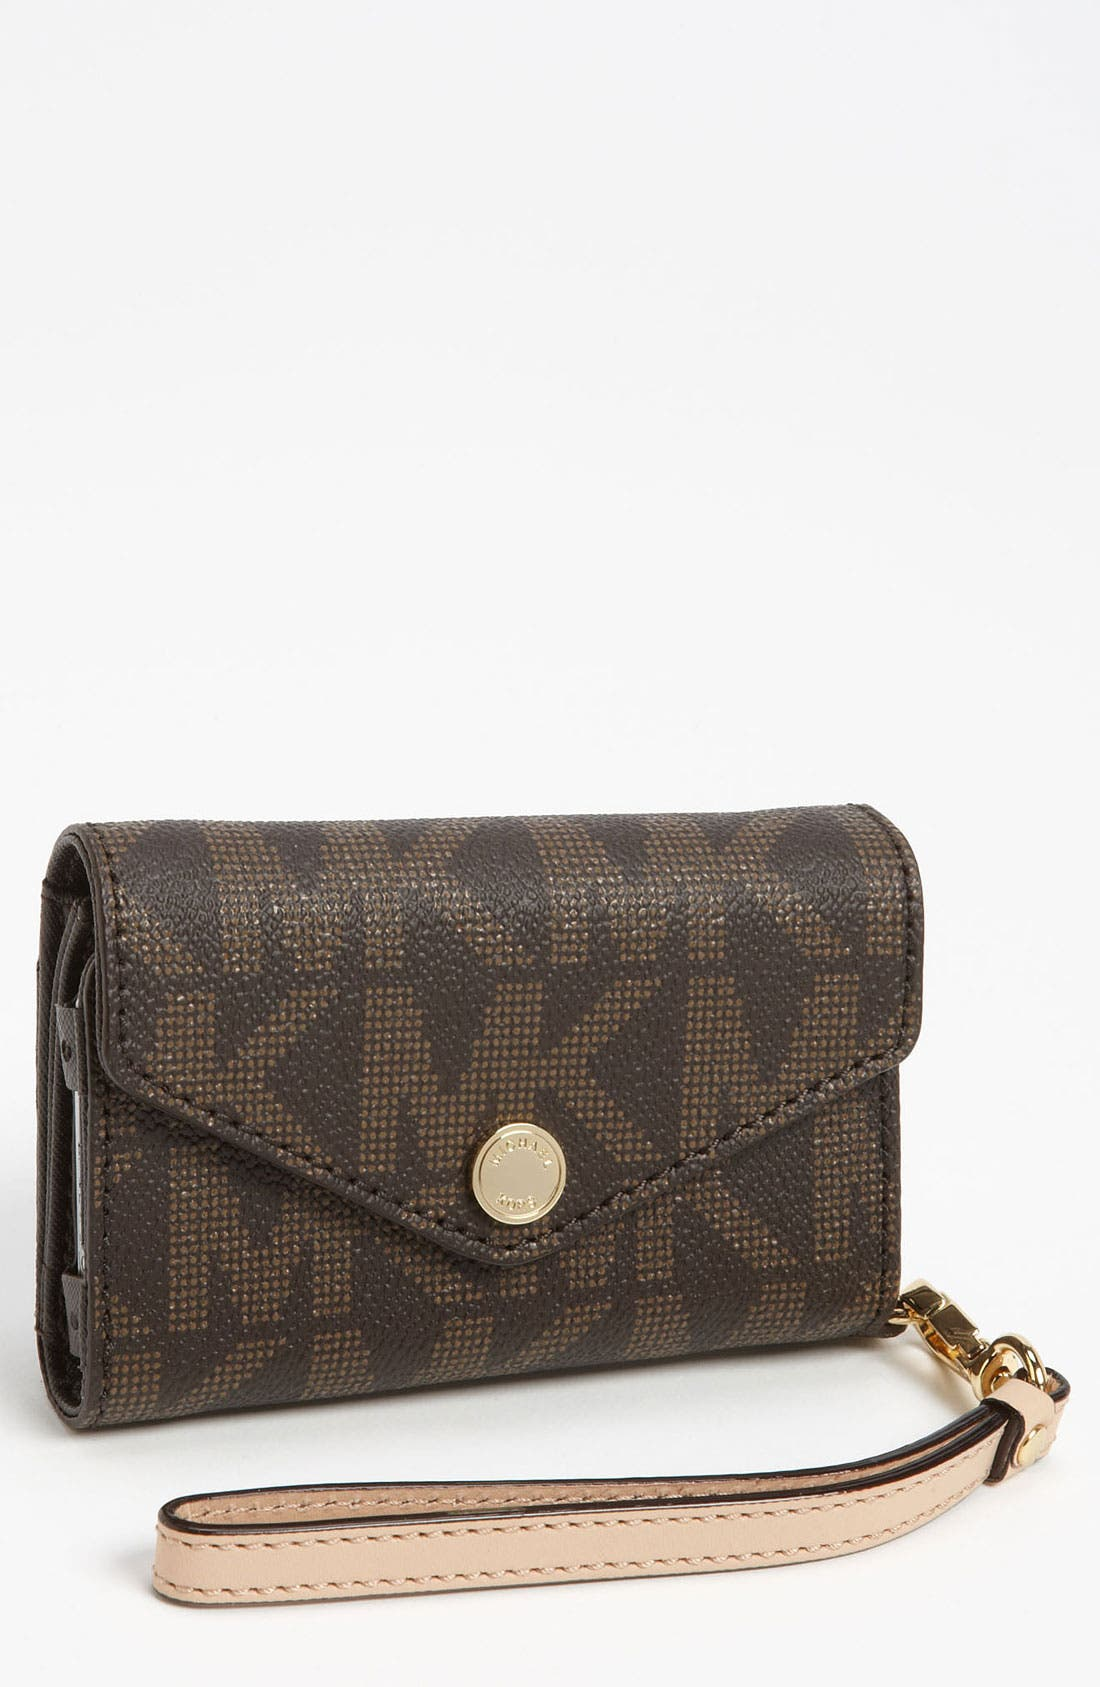 Main Image - MICHAEL Michael Kors iPhone Wristlet